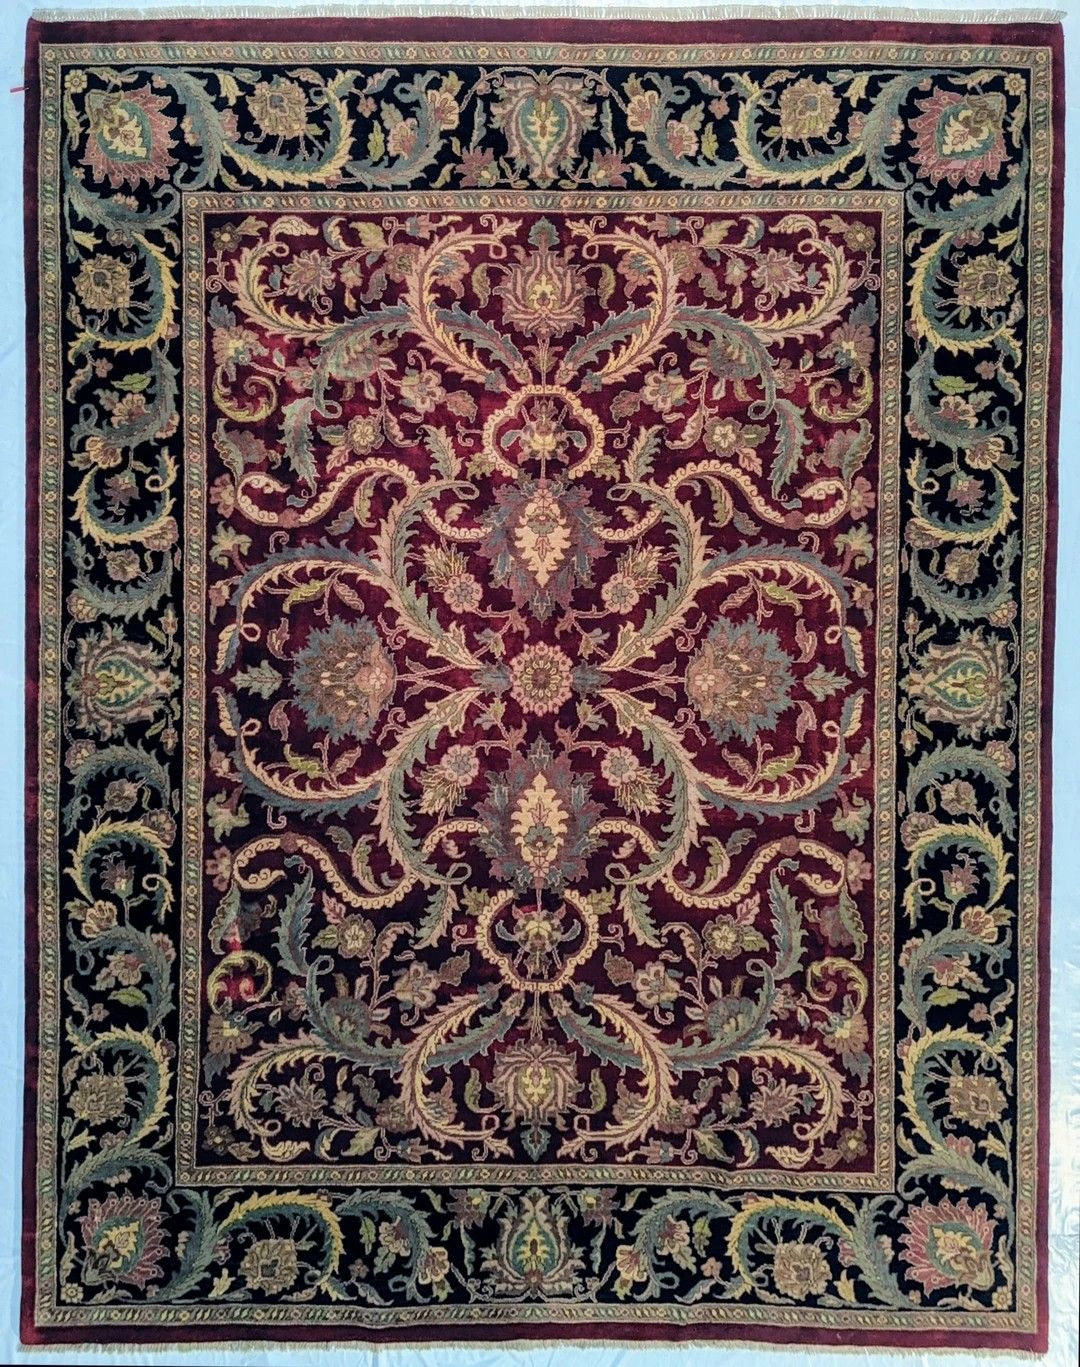 Pin By Bestrugplace Handmade Rugs At On 9x12 Handmade Rugs Clearance Sale On 9 X 12 Carpet 9x11 Rugs 8x12 Rugs Clearance Rugs 9x12 Area Rugs Rugs 9x12 area rug clearance